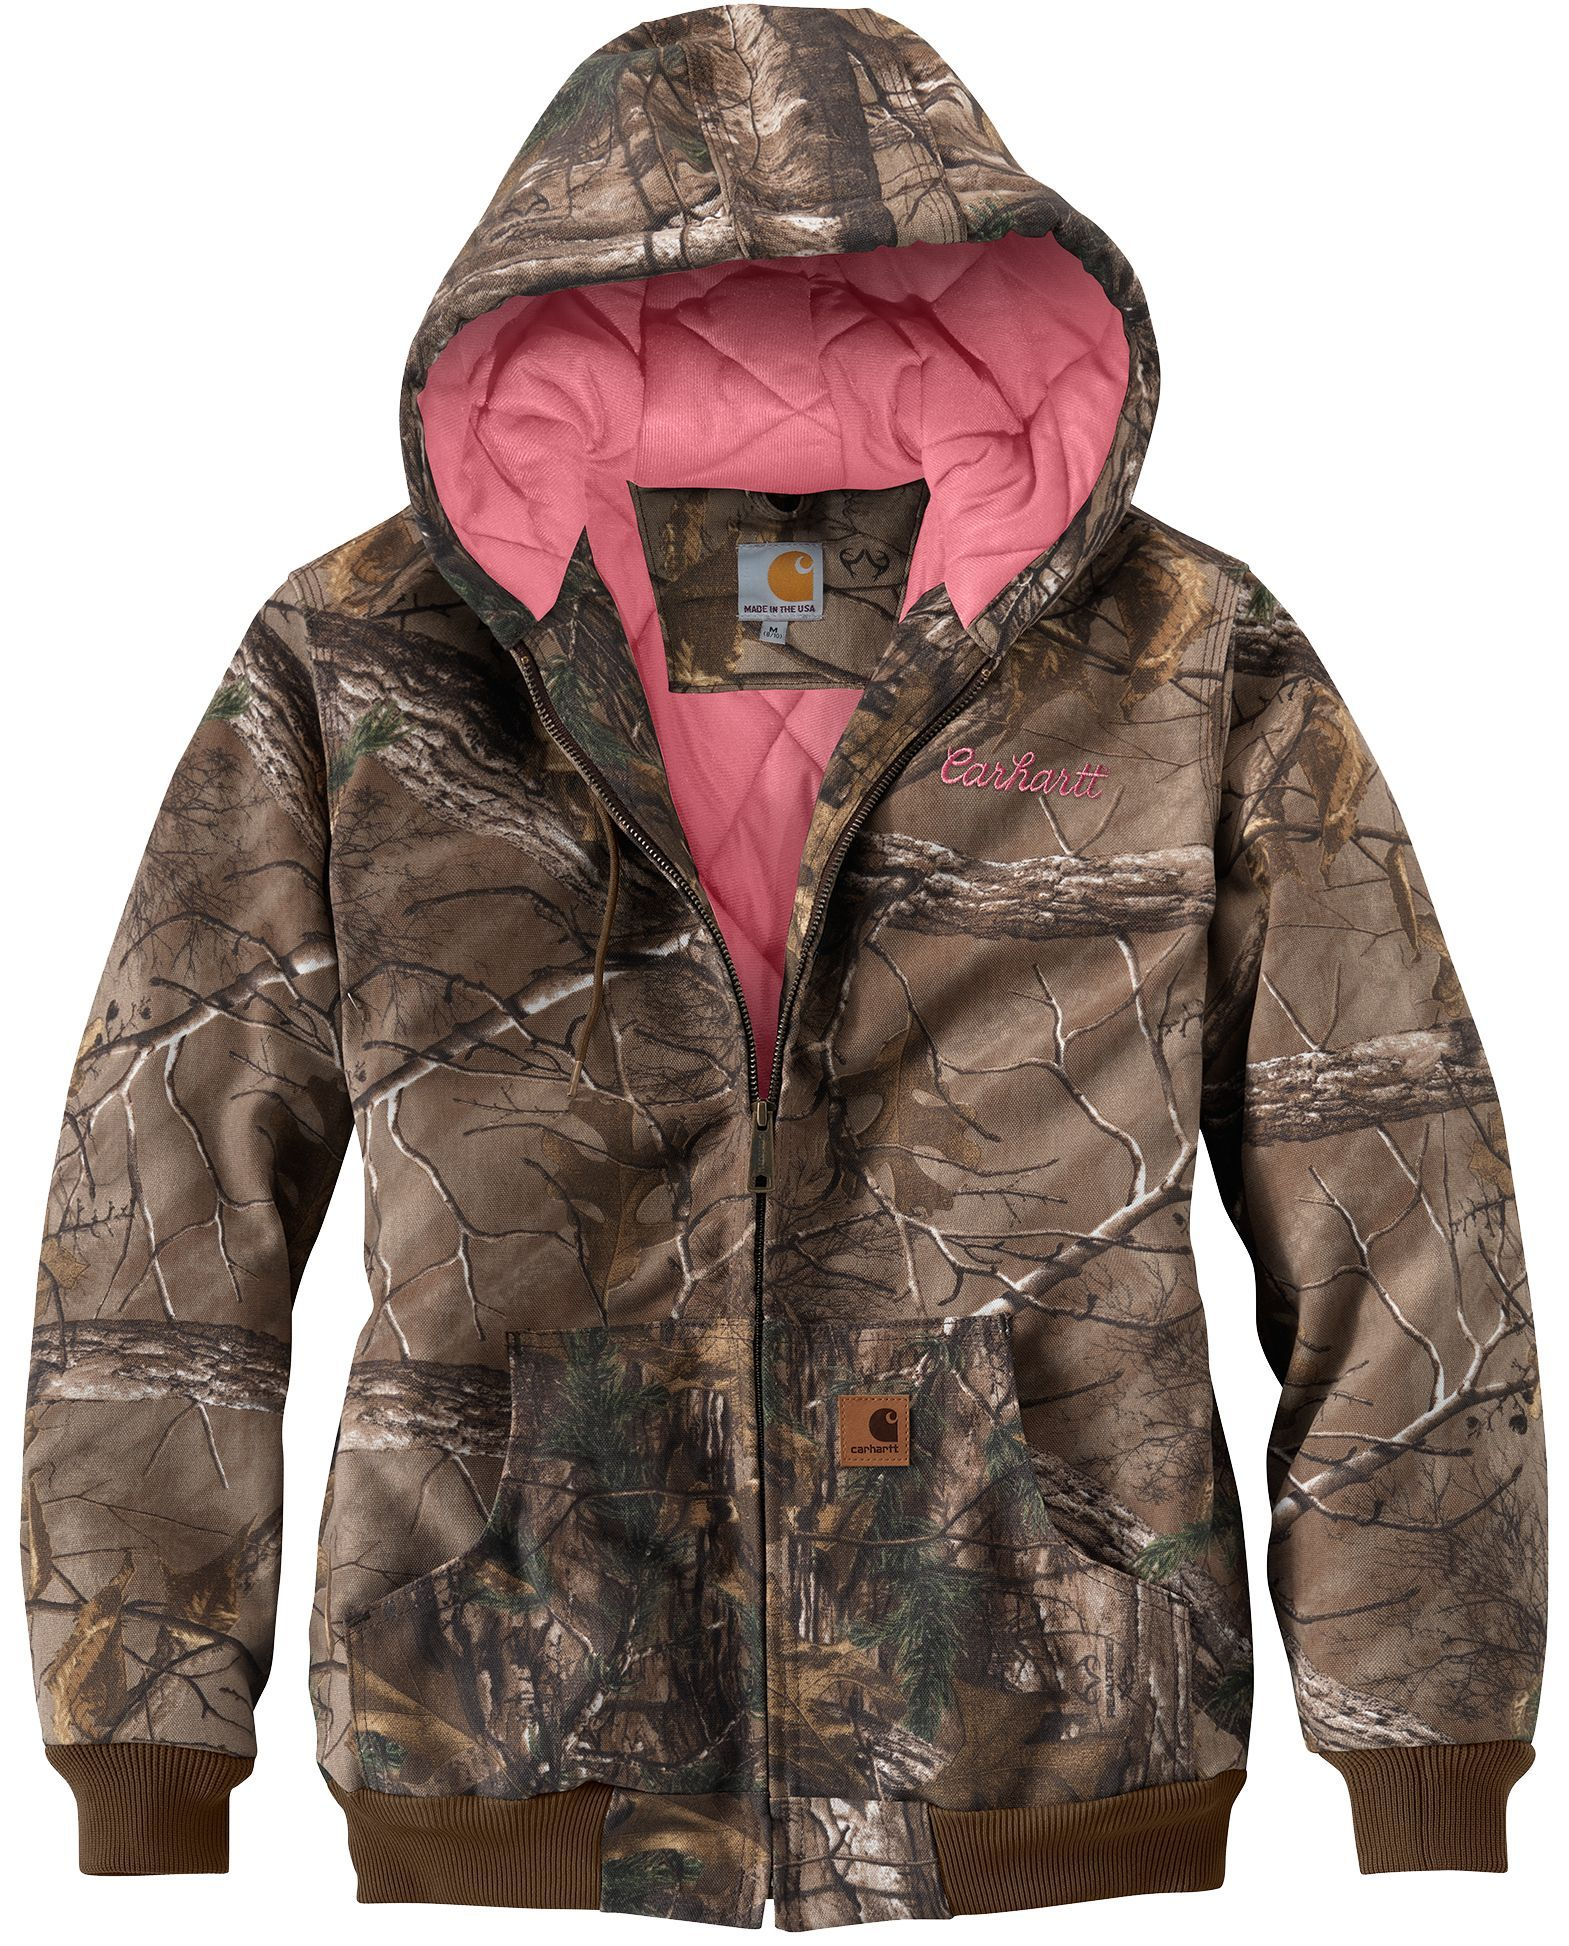 bb729893eea67 Carhartt Women's Realtree Xtra Camo Active Insulated Jacket ...